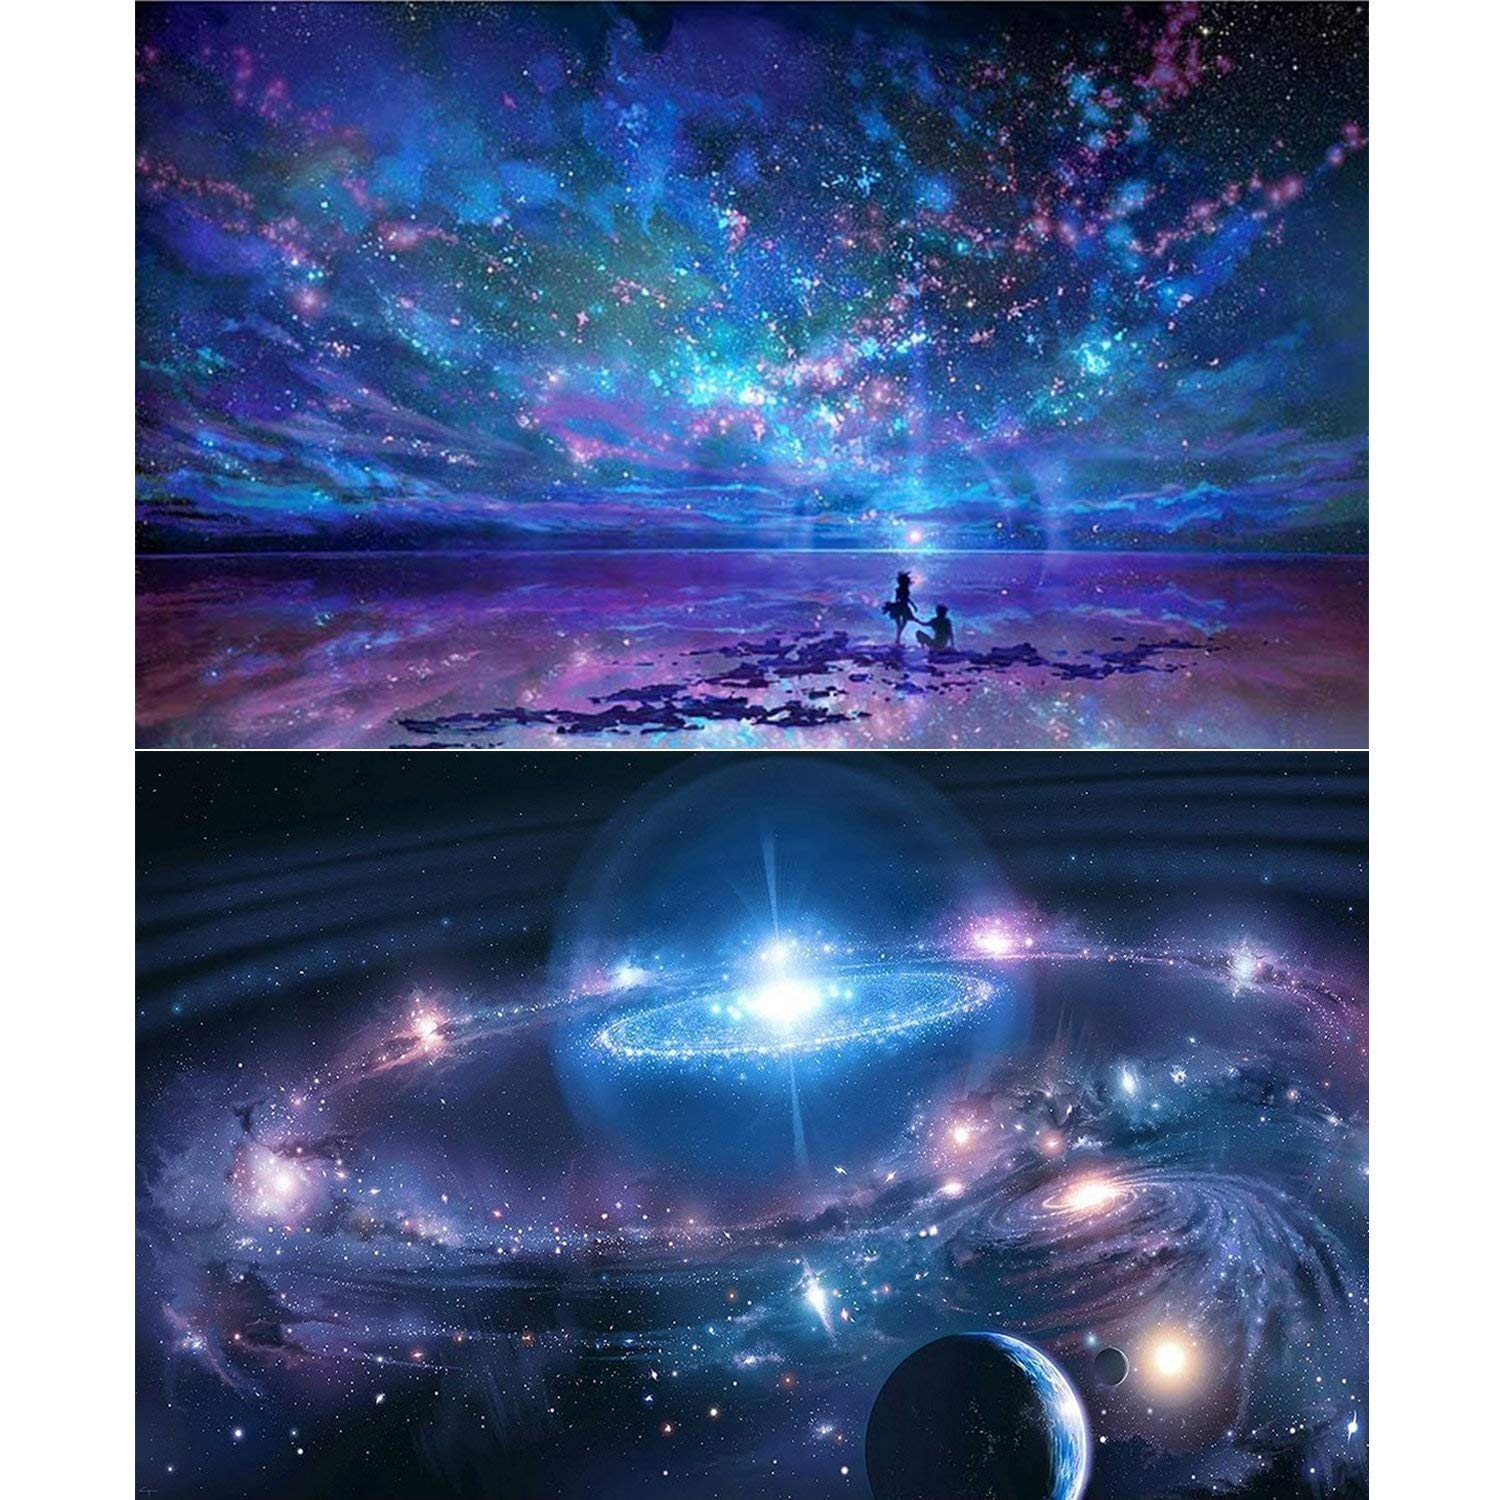 2 Packs 5D DIY Diamond Painting Paint by Numbers Kits for Adult, Night Sky & Fantasy Space Full Drill Diamond Embroidery Paintings Pictures Arts Craft for Home Decoration KRUCE